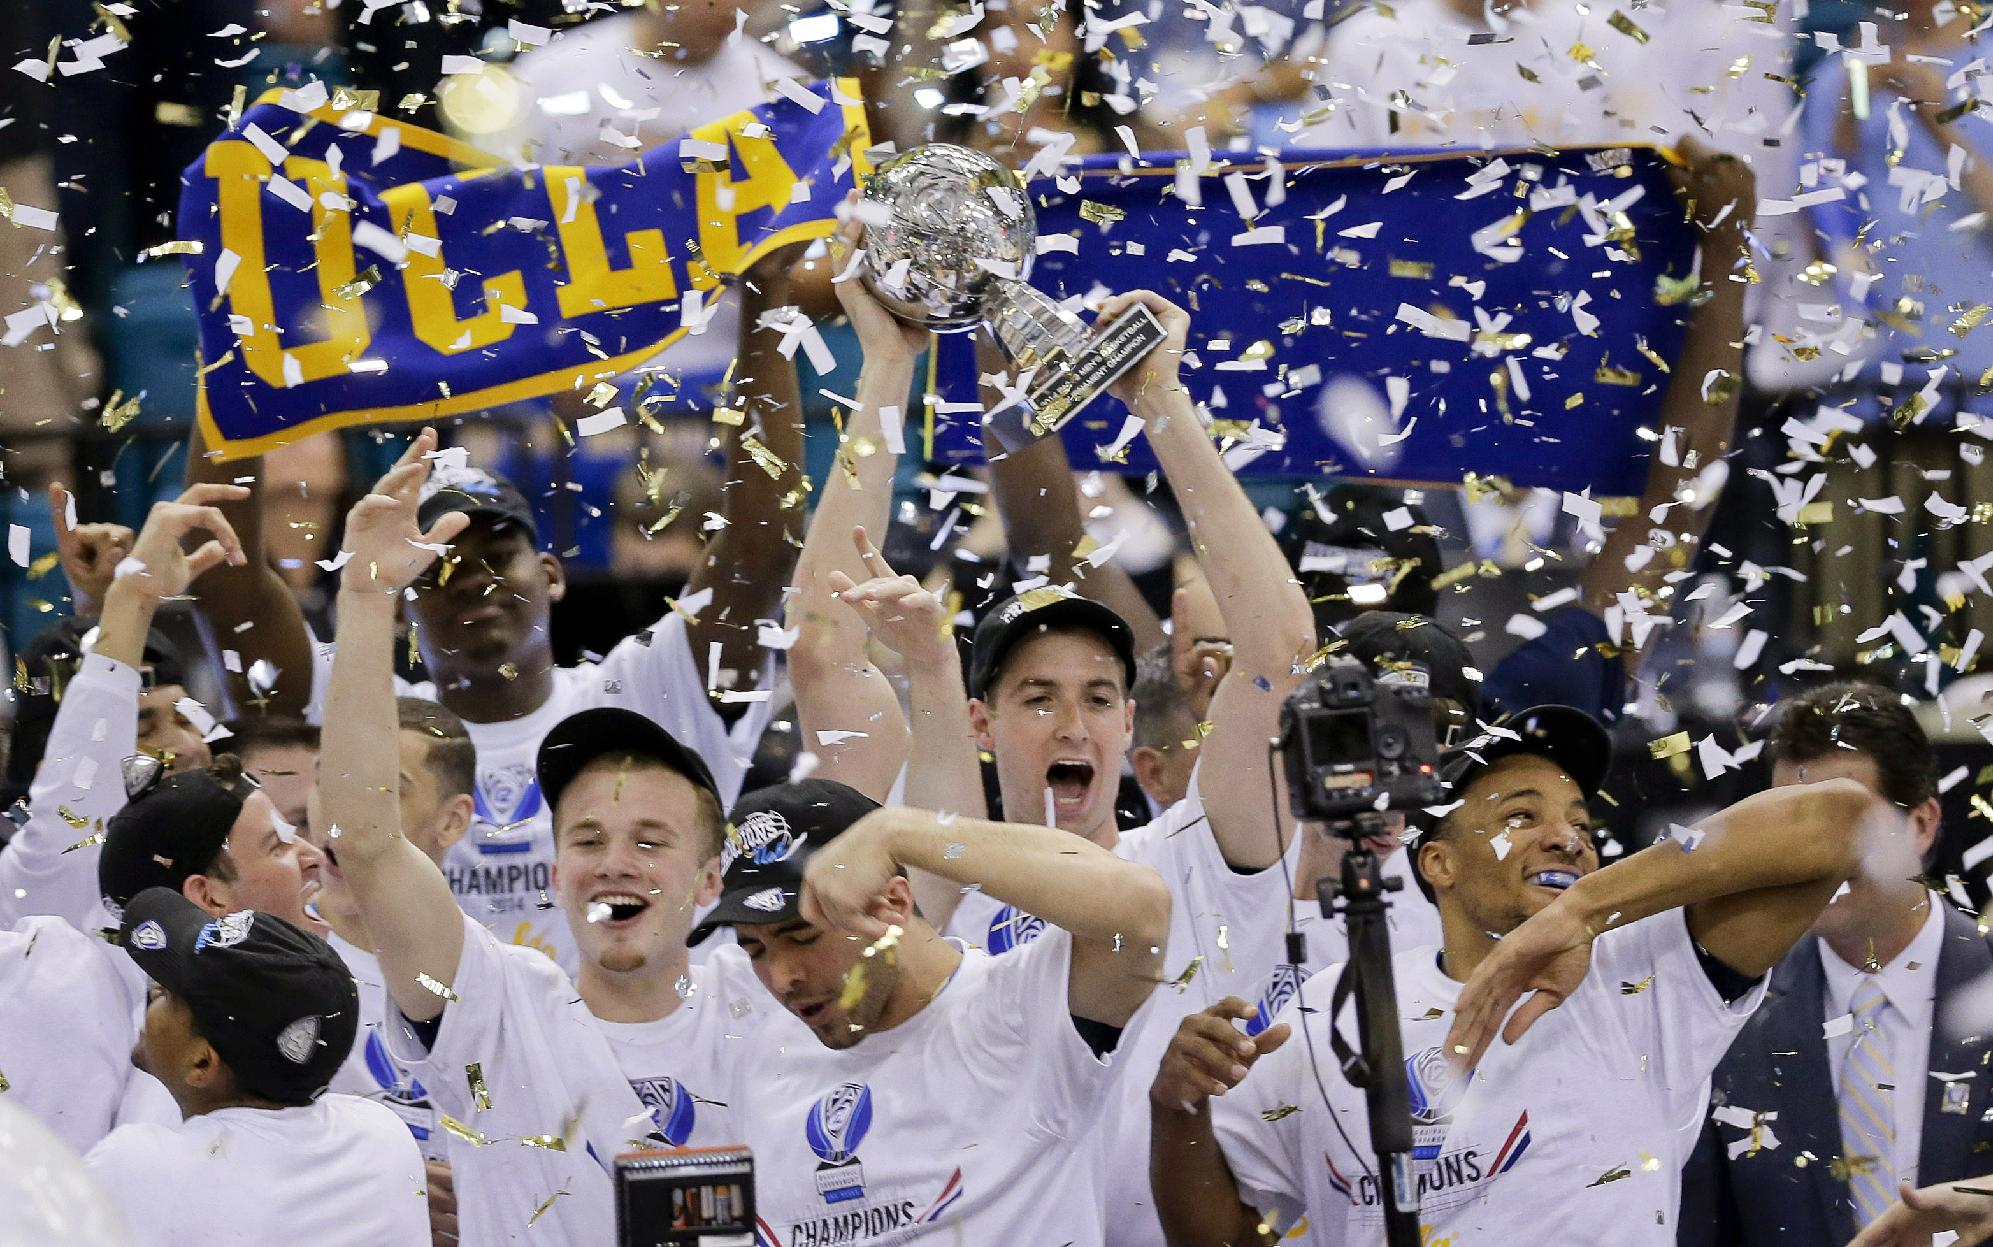 UCLA players celebrate with the championship trophy after beating Arizona 75-71 in the championship game of the NCAA Pac-12 conference college basketball tournament, Saturday, March 15, 2014, in Las Vegas